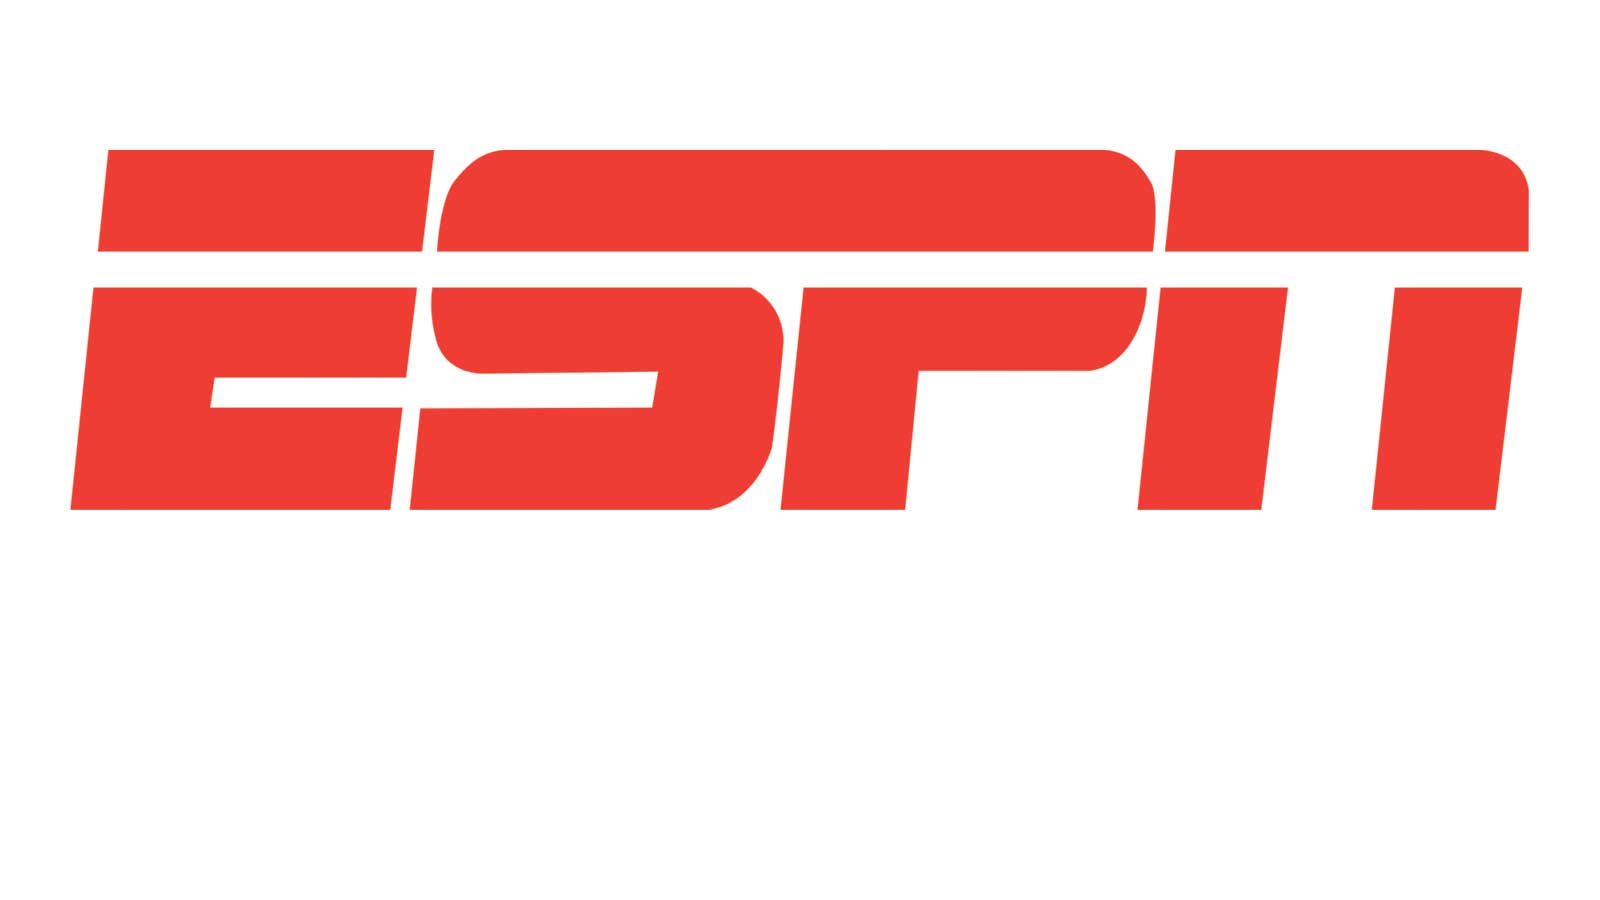 Arena Football League And Espn Announce Agreement To.